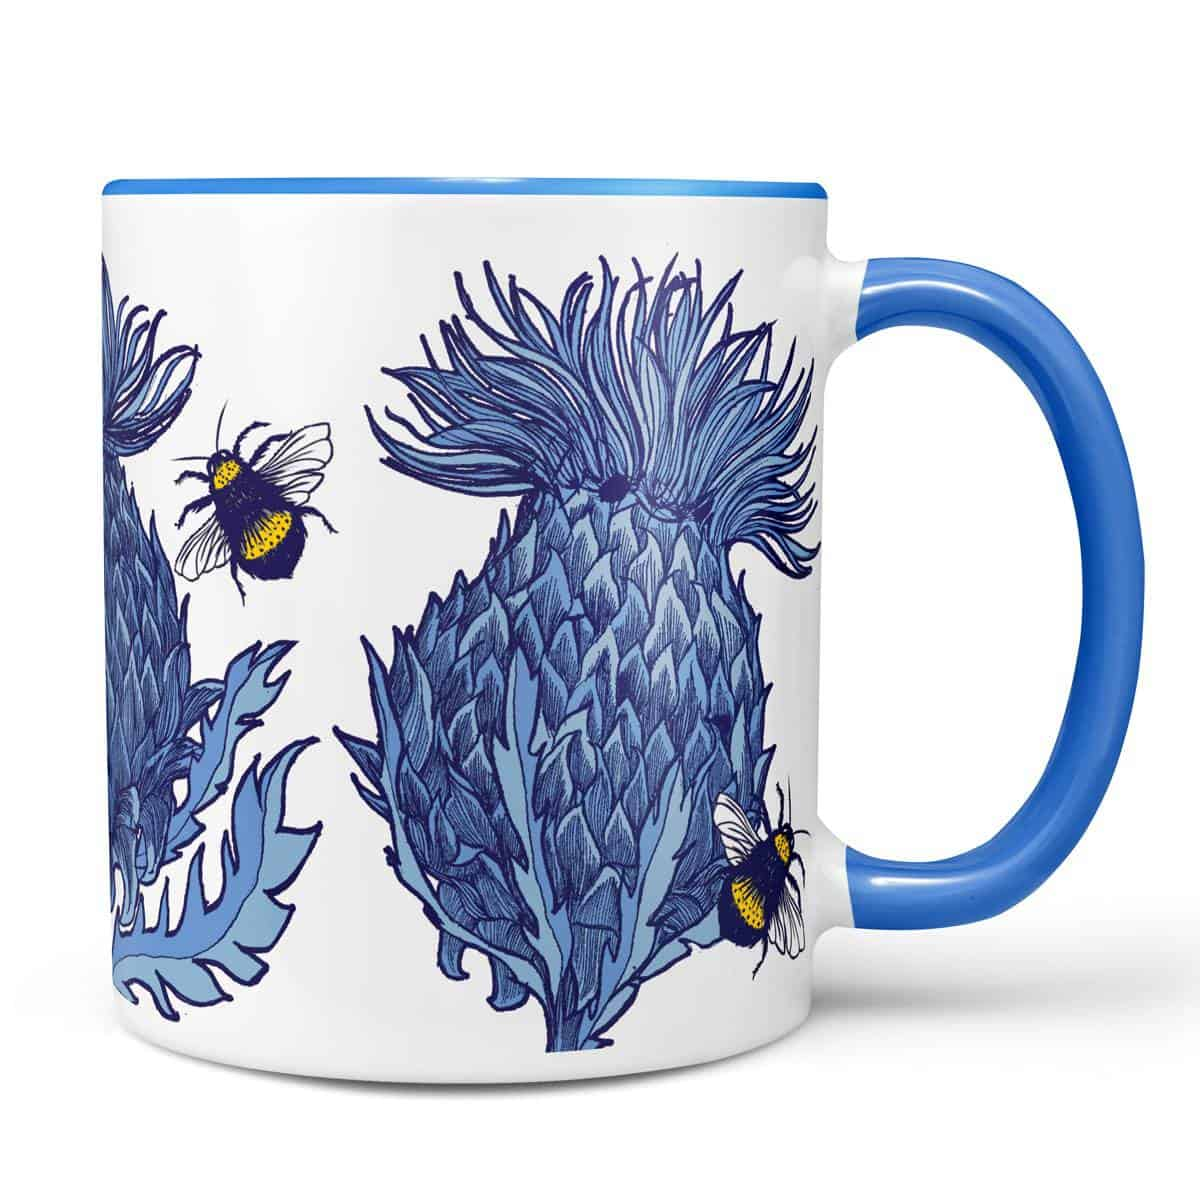 Scottish Thistle Mug in blue by Scottish artist Gillian Kyle